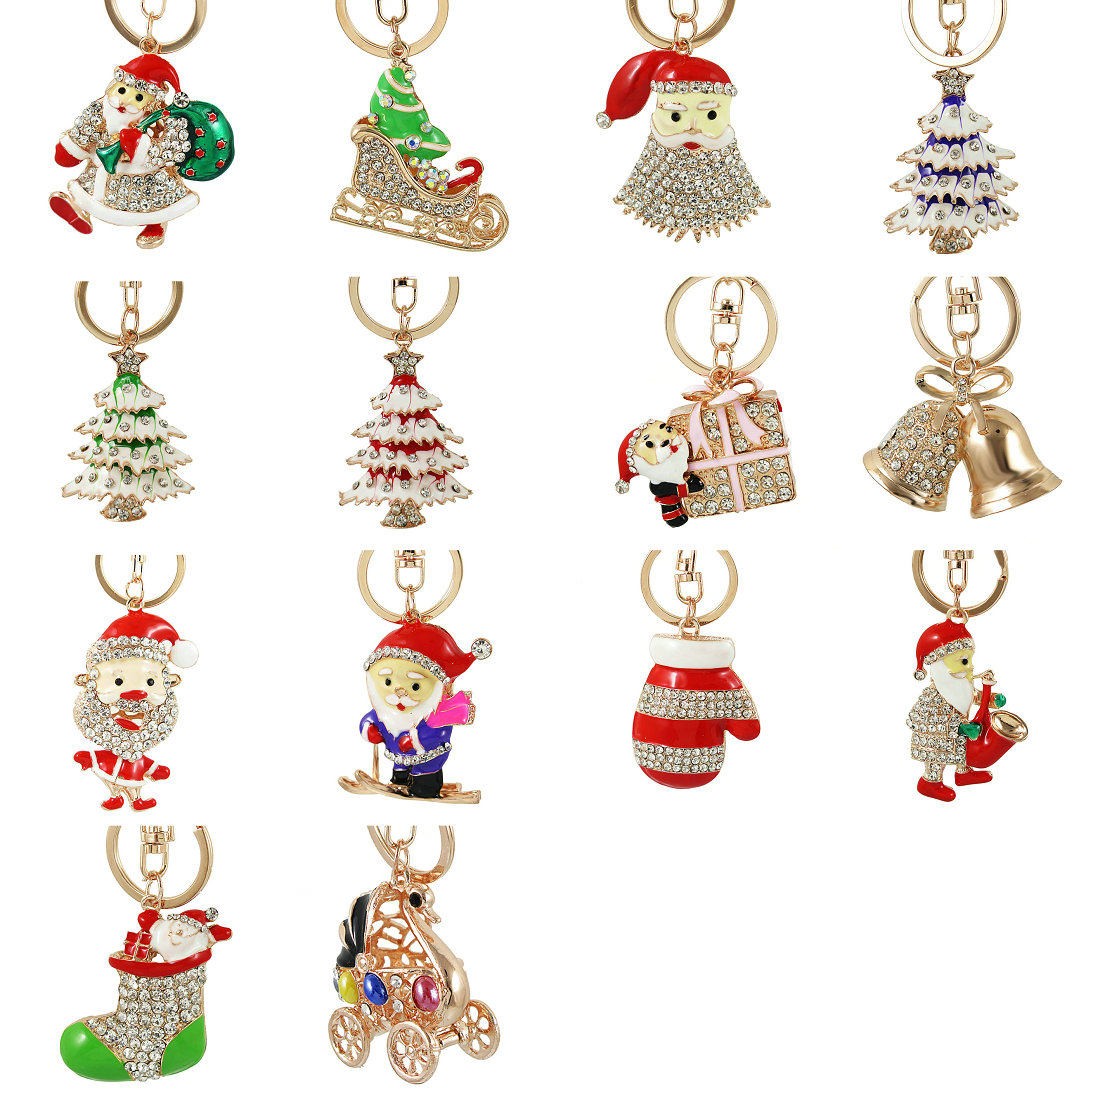 Enamel Christmas Tree boots Santa Claus Keyrings Red Star Crystal Key Holder Chains Purs ...